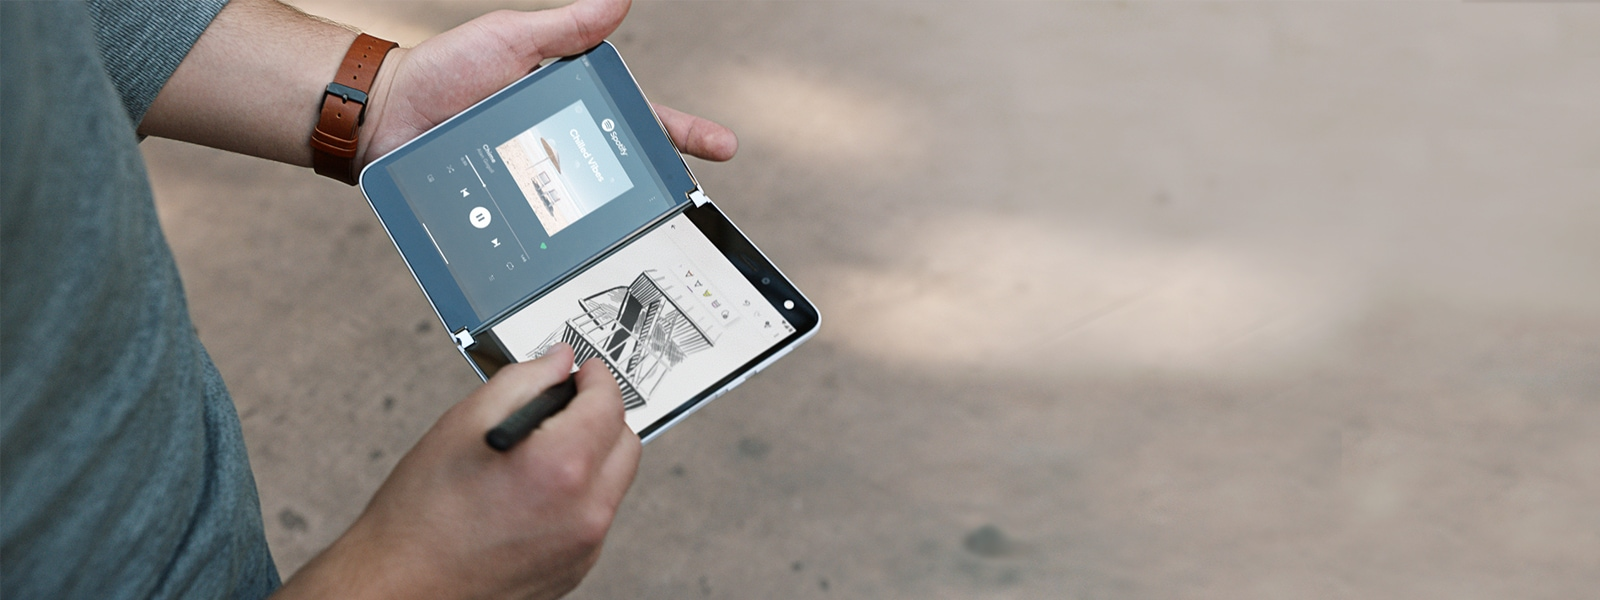 Surface Duo being used with a Surface Pen to sketch out an architectural drawing on one screen and having music play on the other screen.